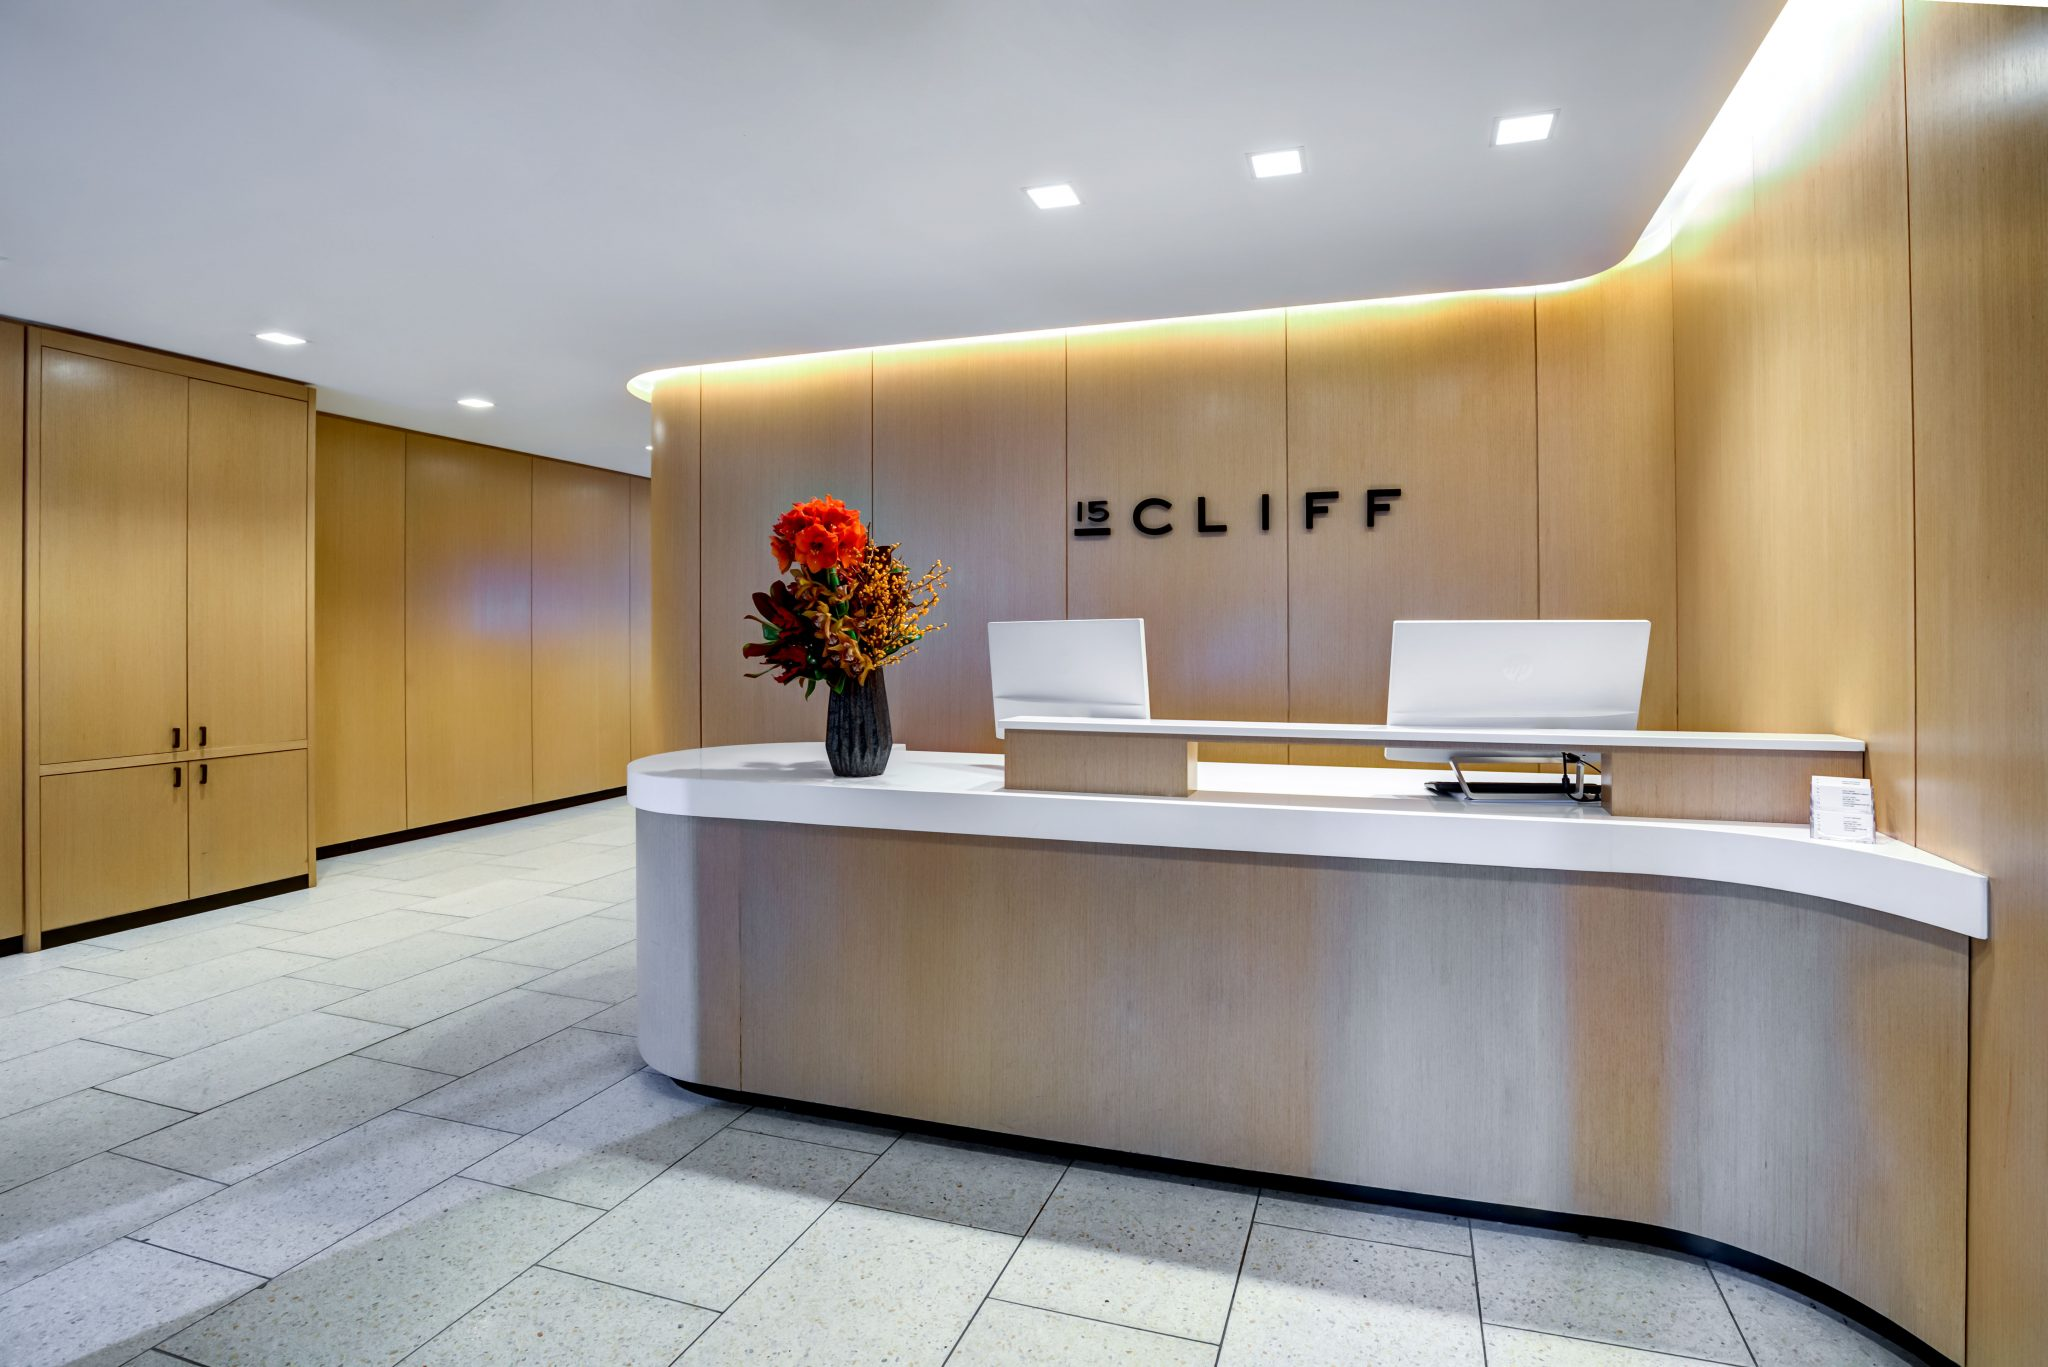 Interior of modern lobby with reception desk